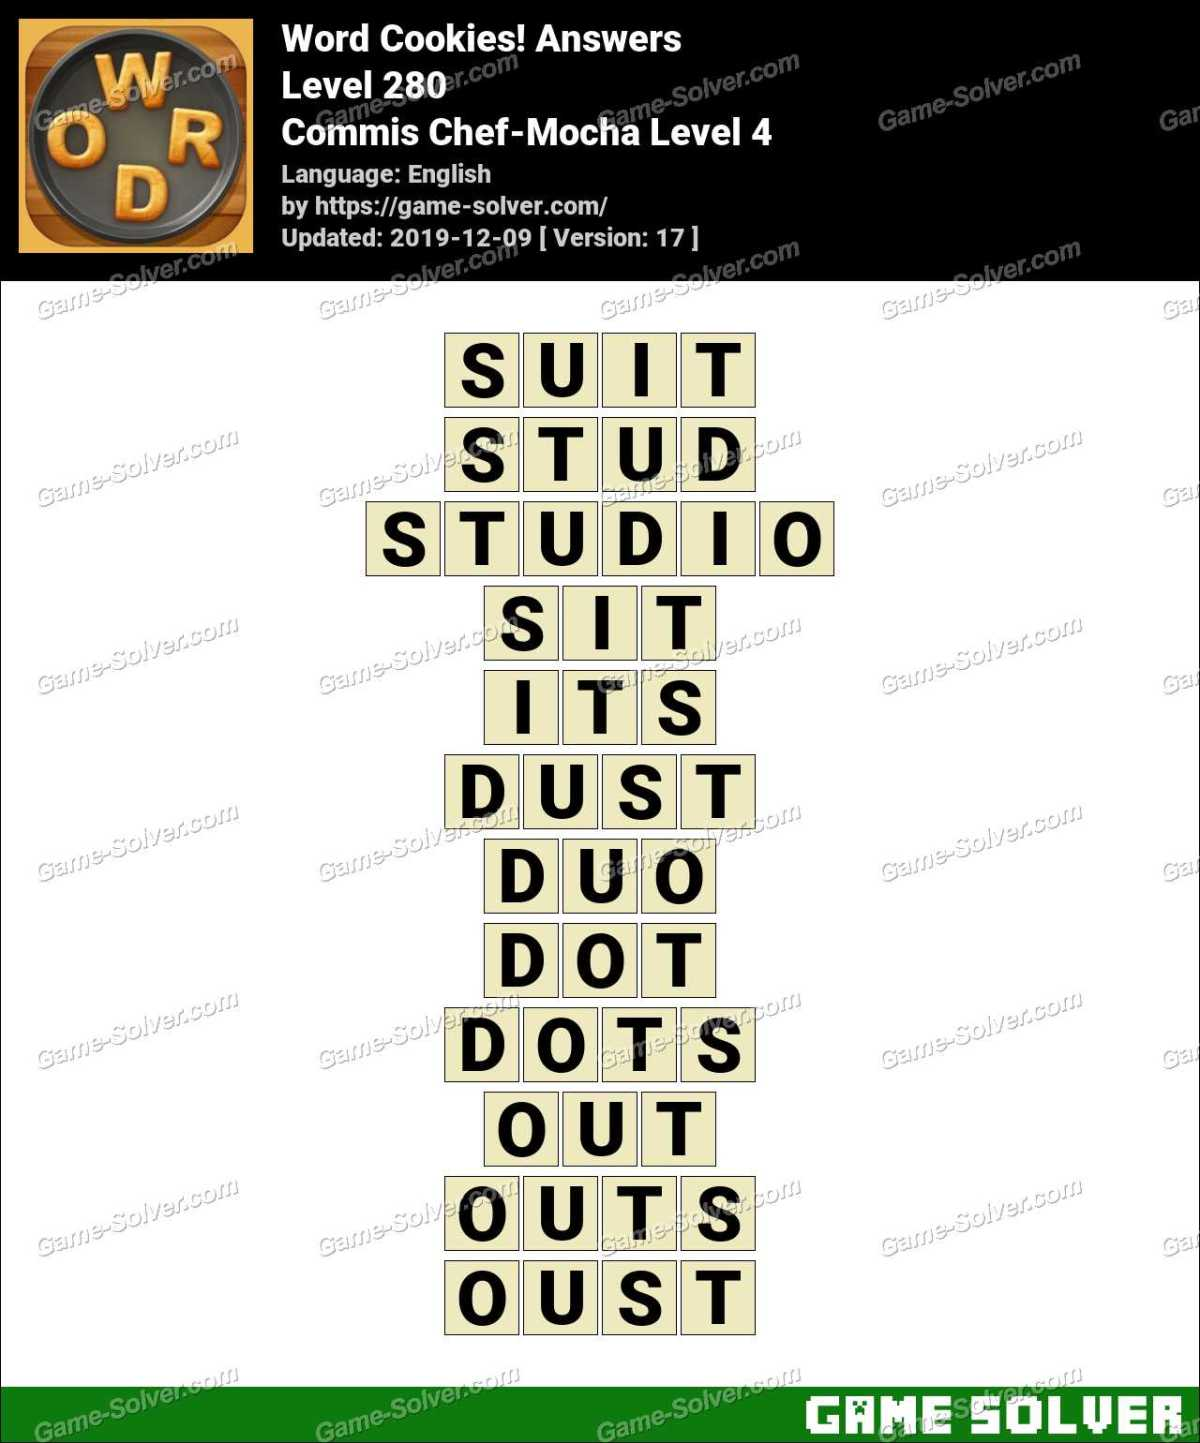 Word Cookies Commis Chef-Mocha Level 4 Answers